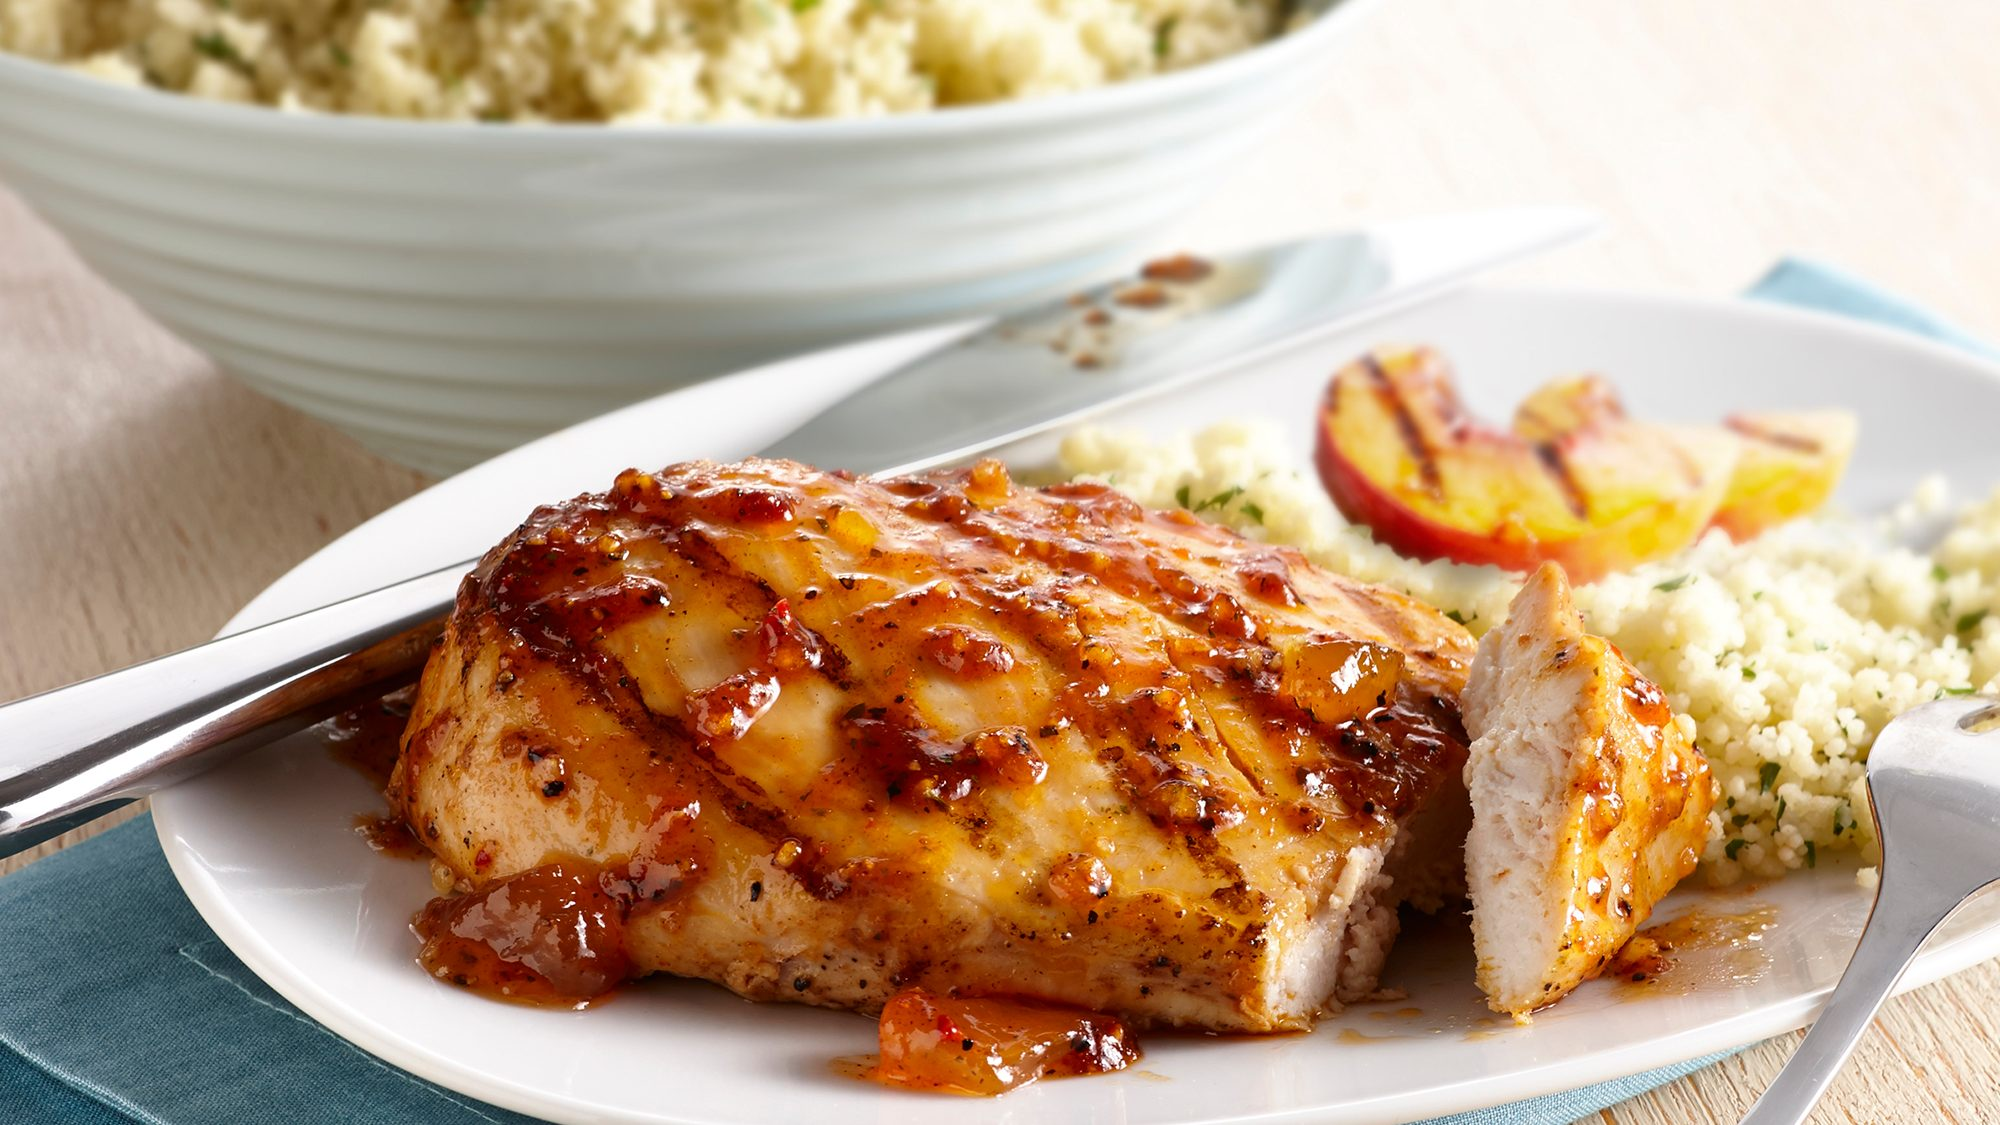 peachy-grilled-chicken.jpg